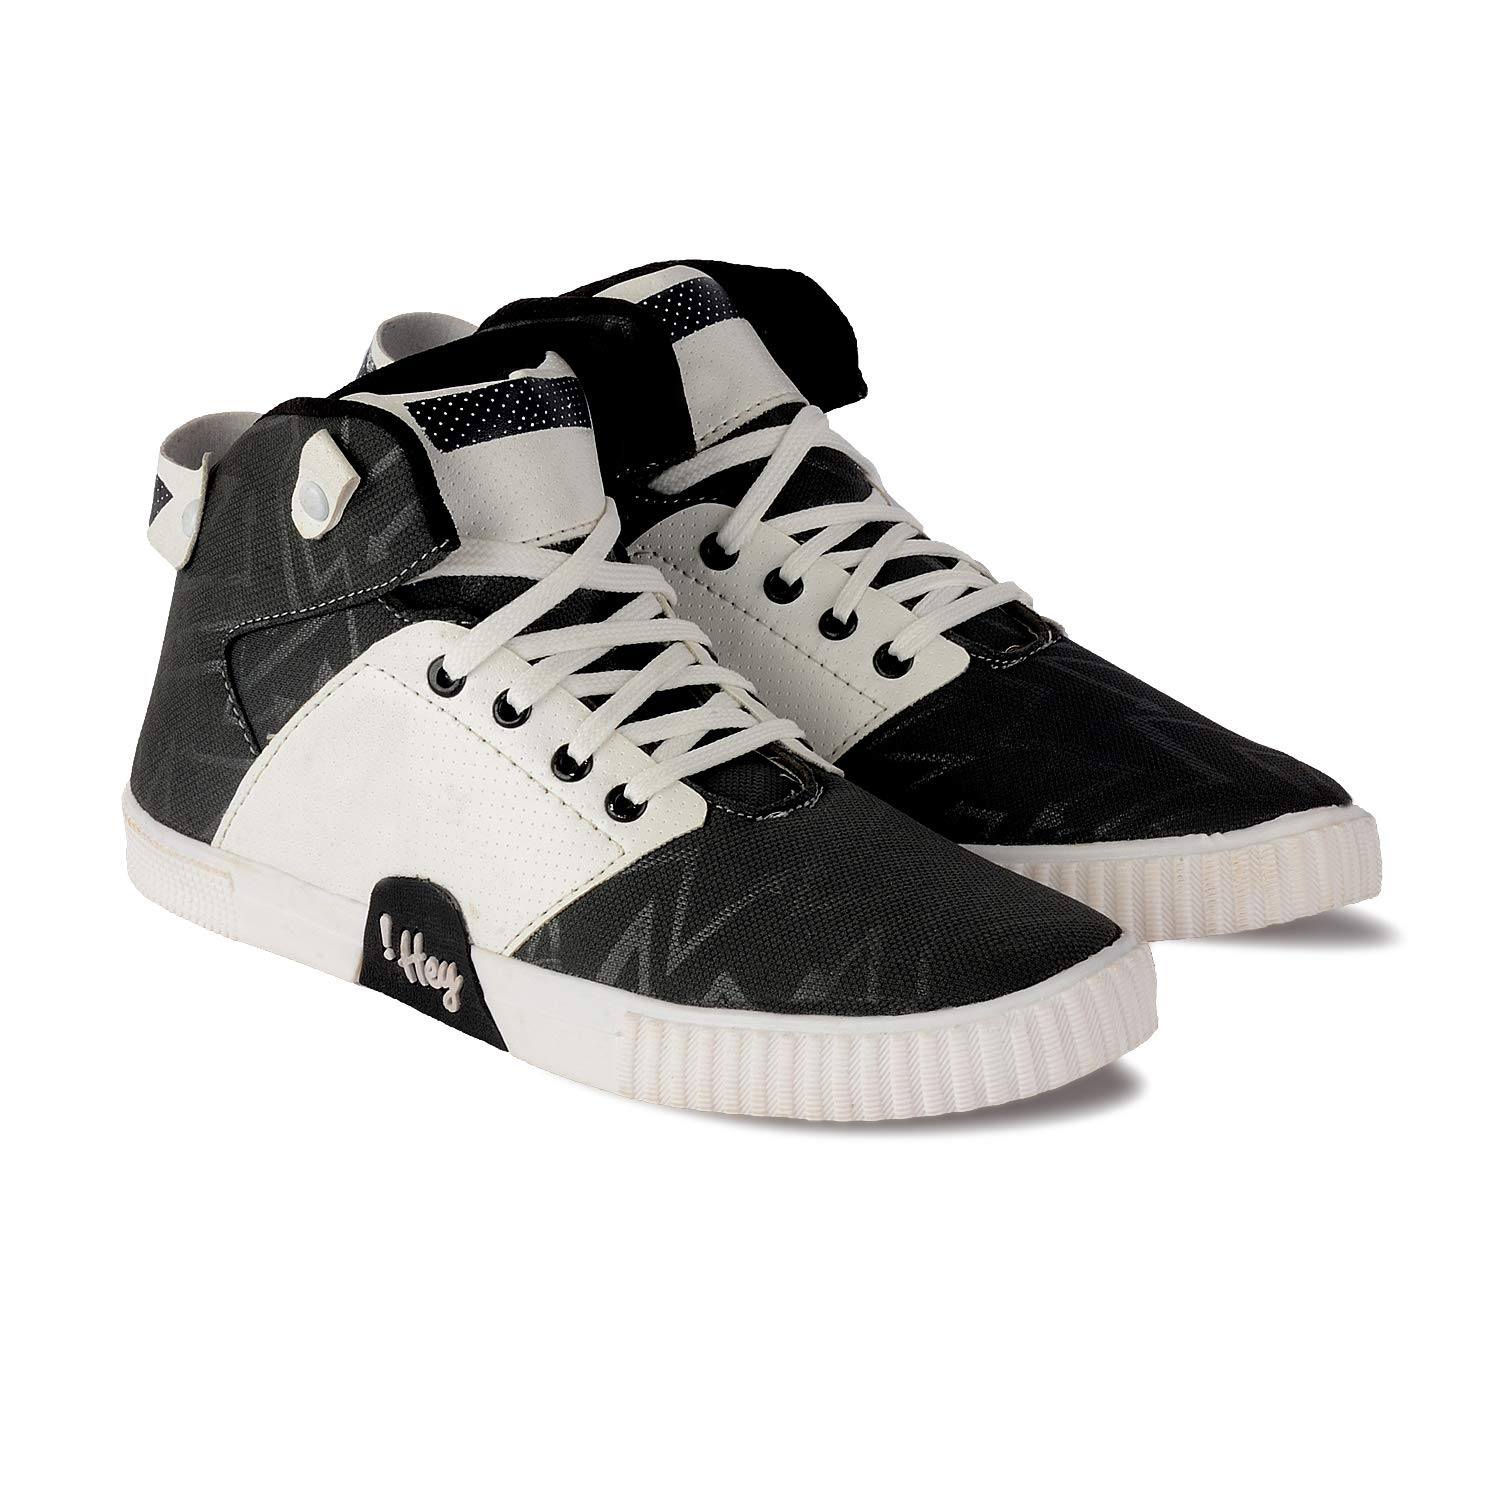 d2b7543cb45e71 NAKCUR Men's Canvas Shoes: Buy Online at Low Prices in India - Amazon.in